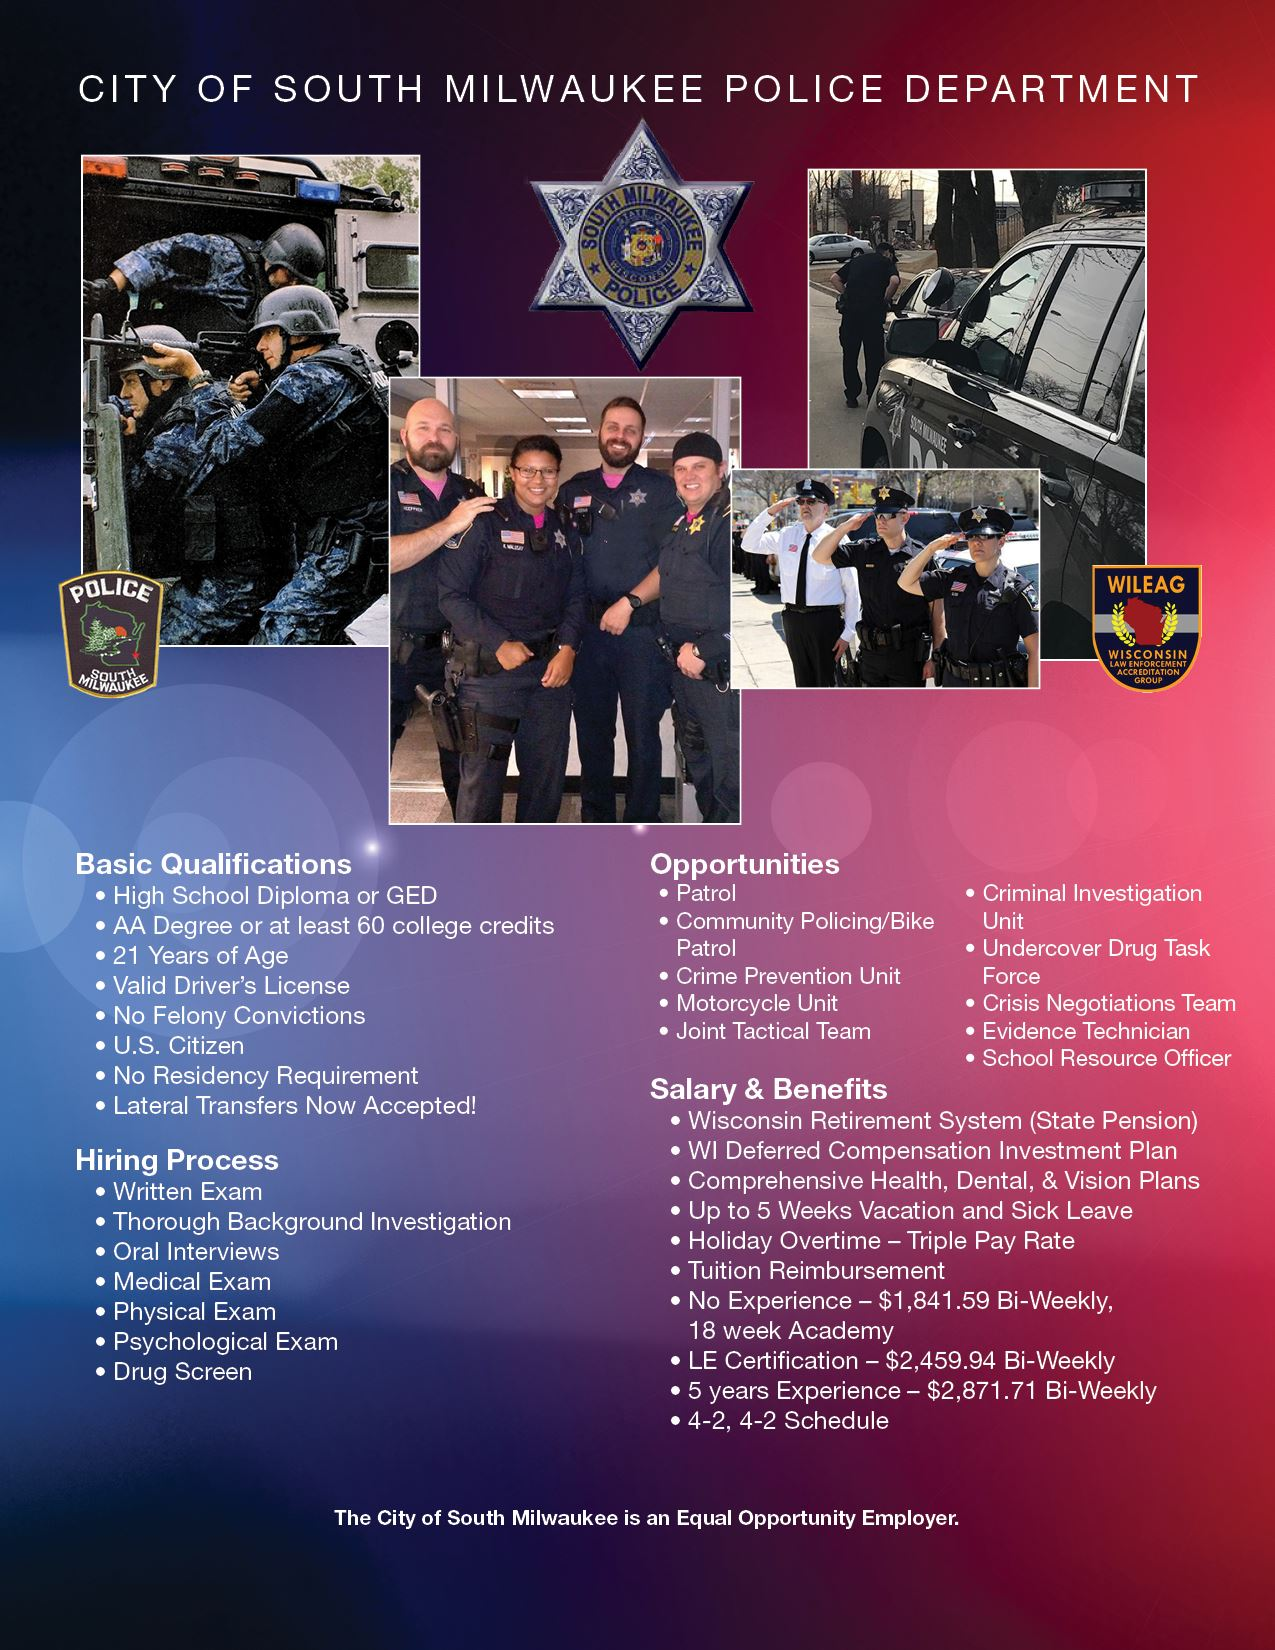 Police Department Qualifications, Hiring Process, Opportunities, and Benefits